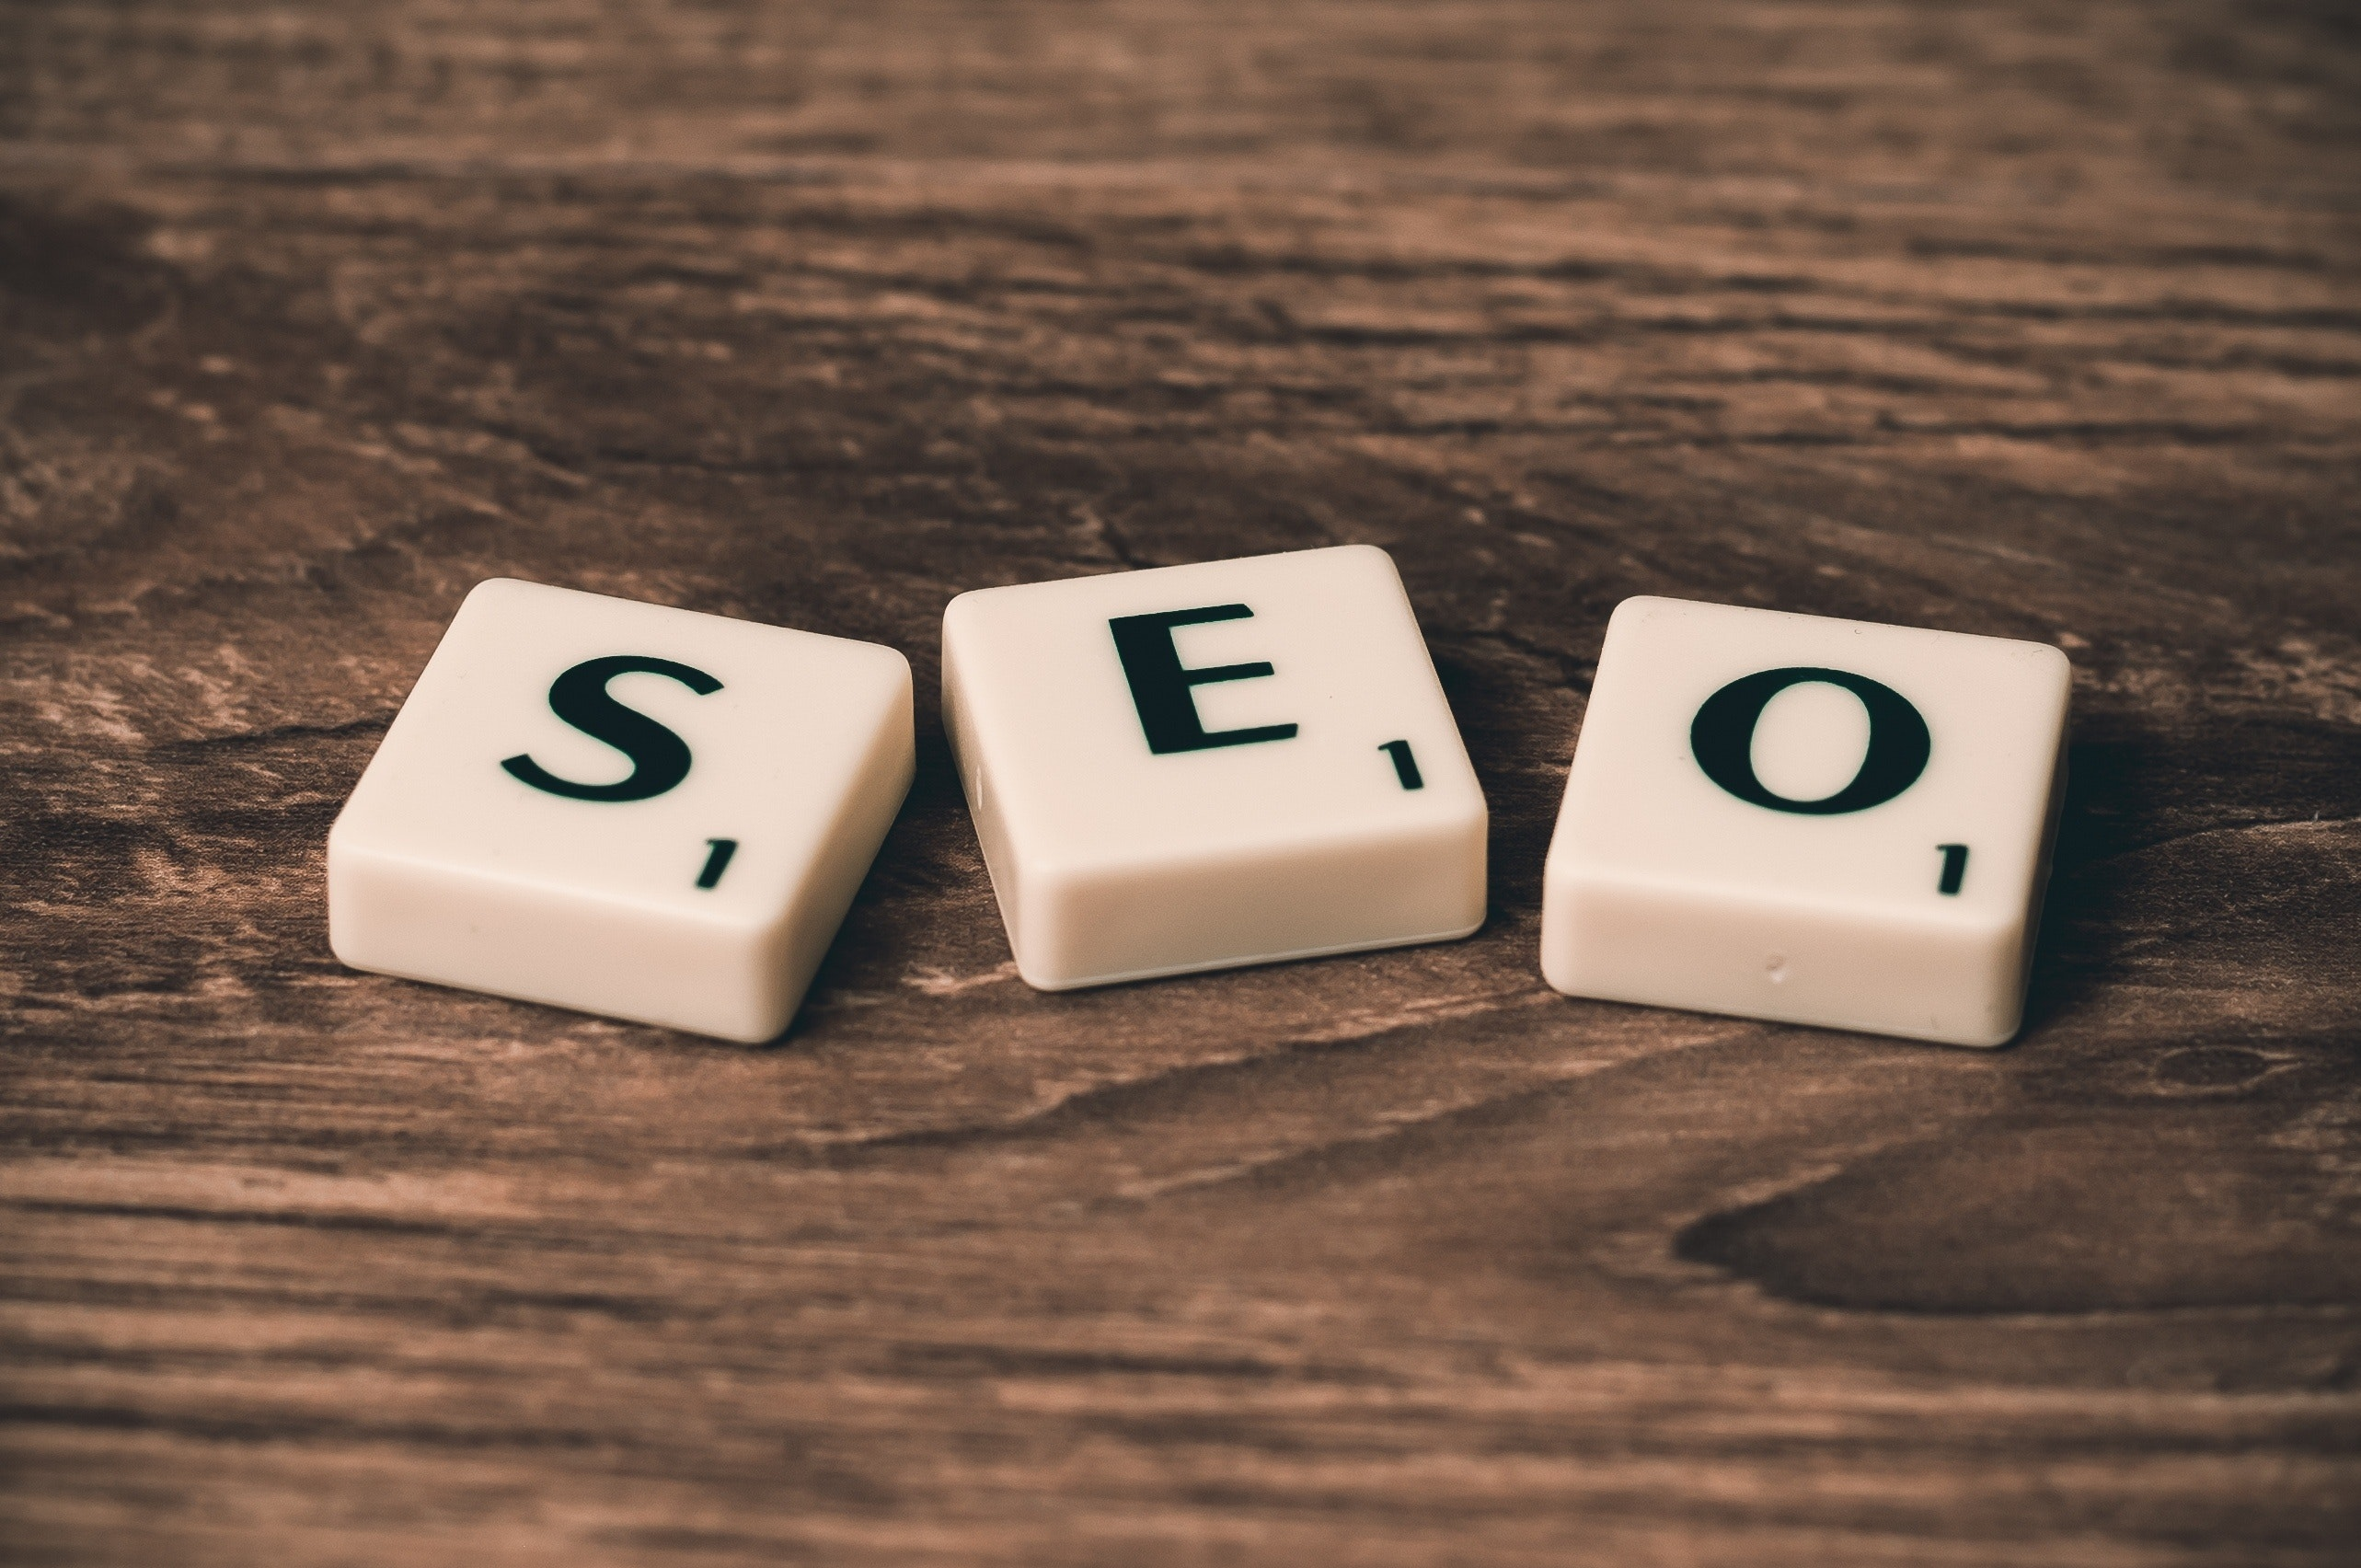 SEO Basics: To Grow Your Site's Traffic, Make It More Visible